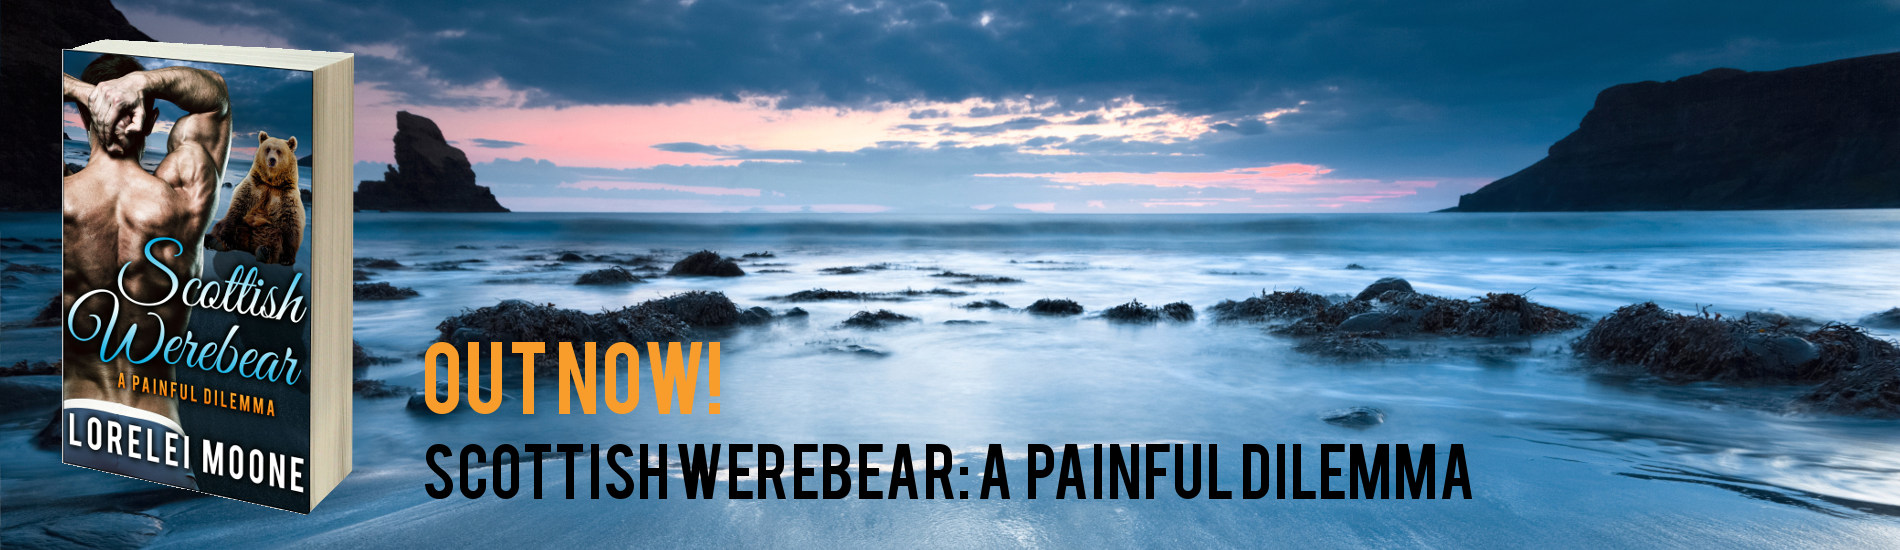 Out Now – Scottish Werebear: A Painful Dilemma